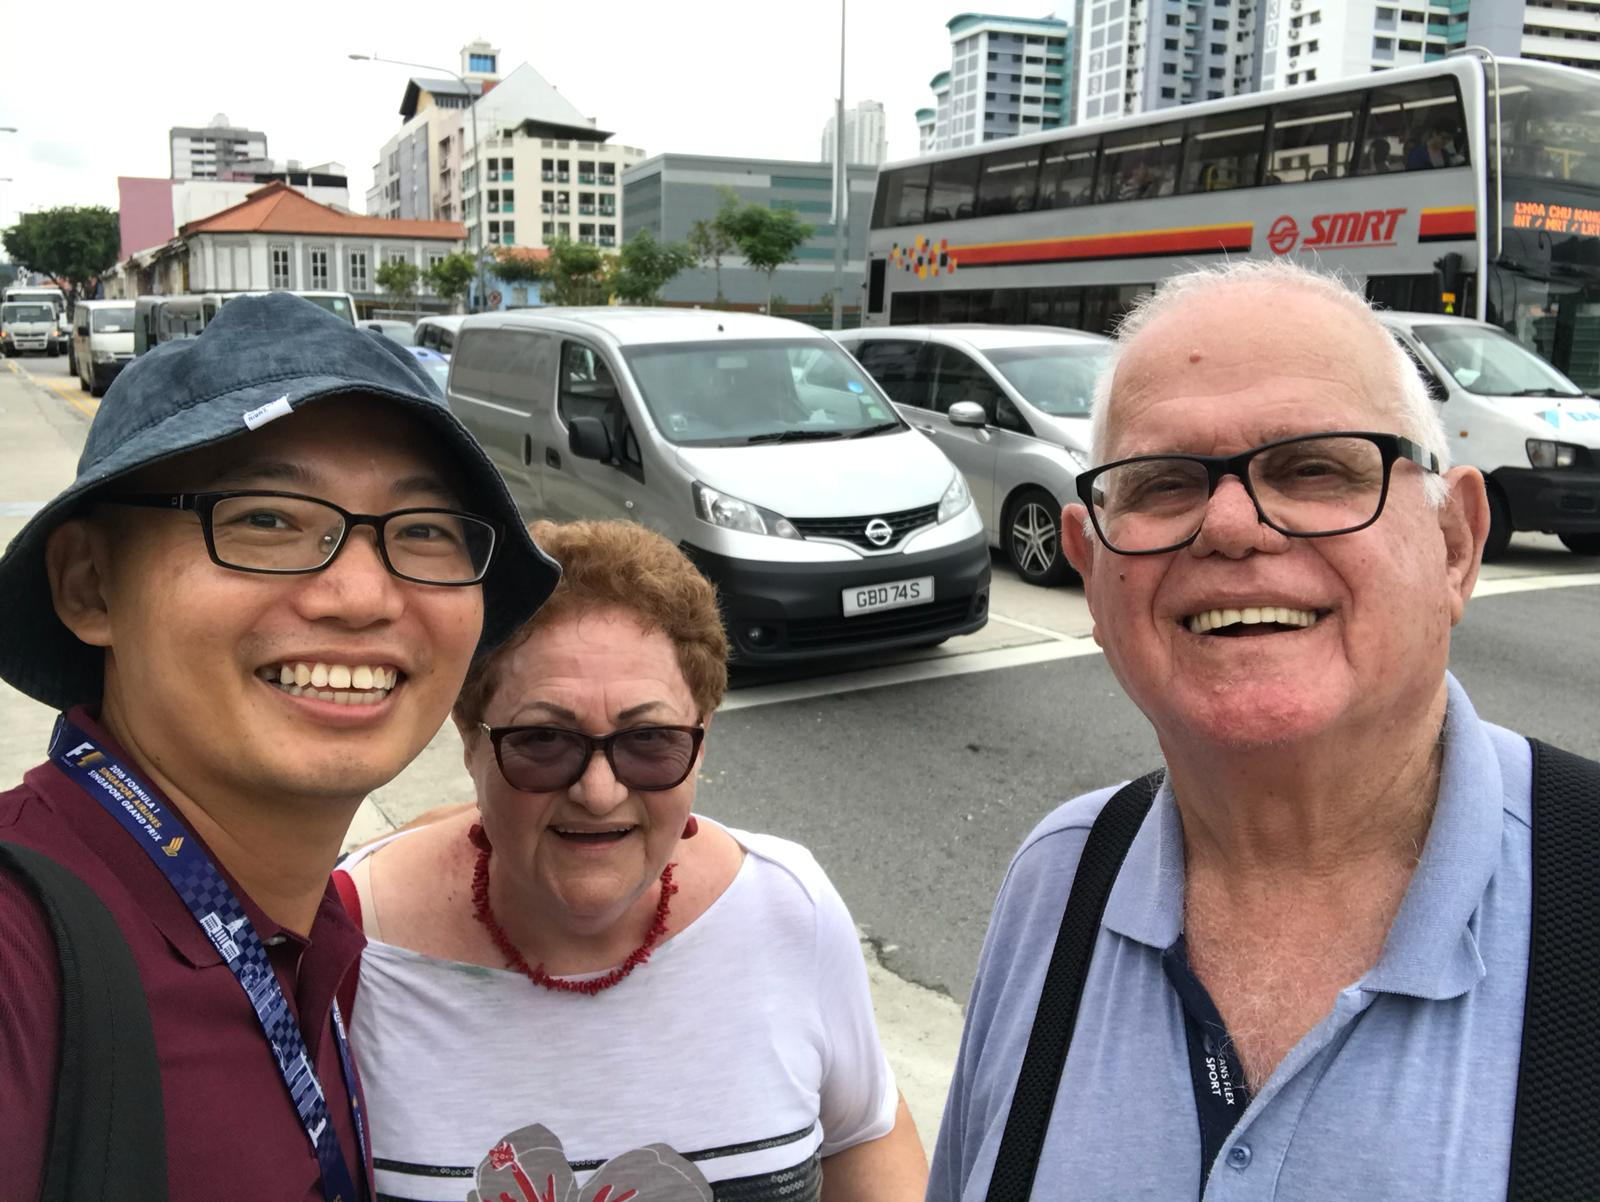 It's always fun on a Singapore Day Tour with Gee Soo!